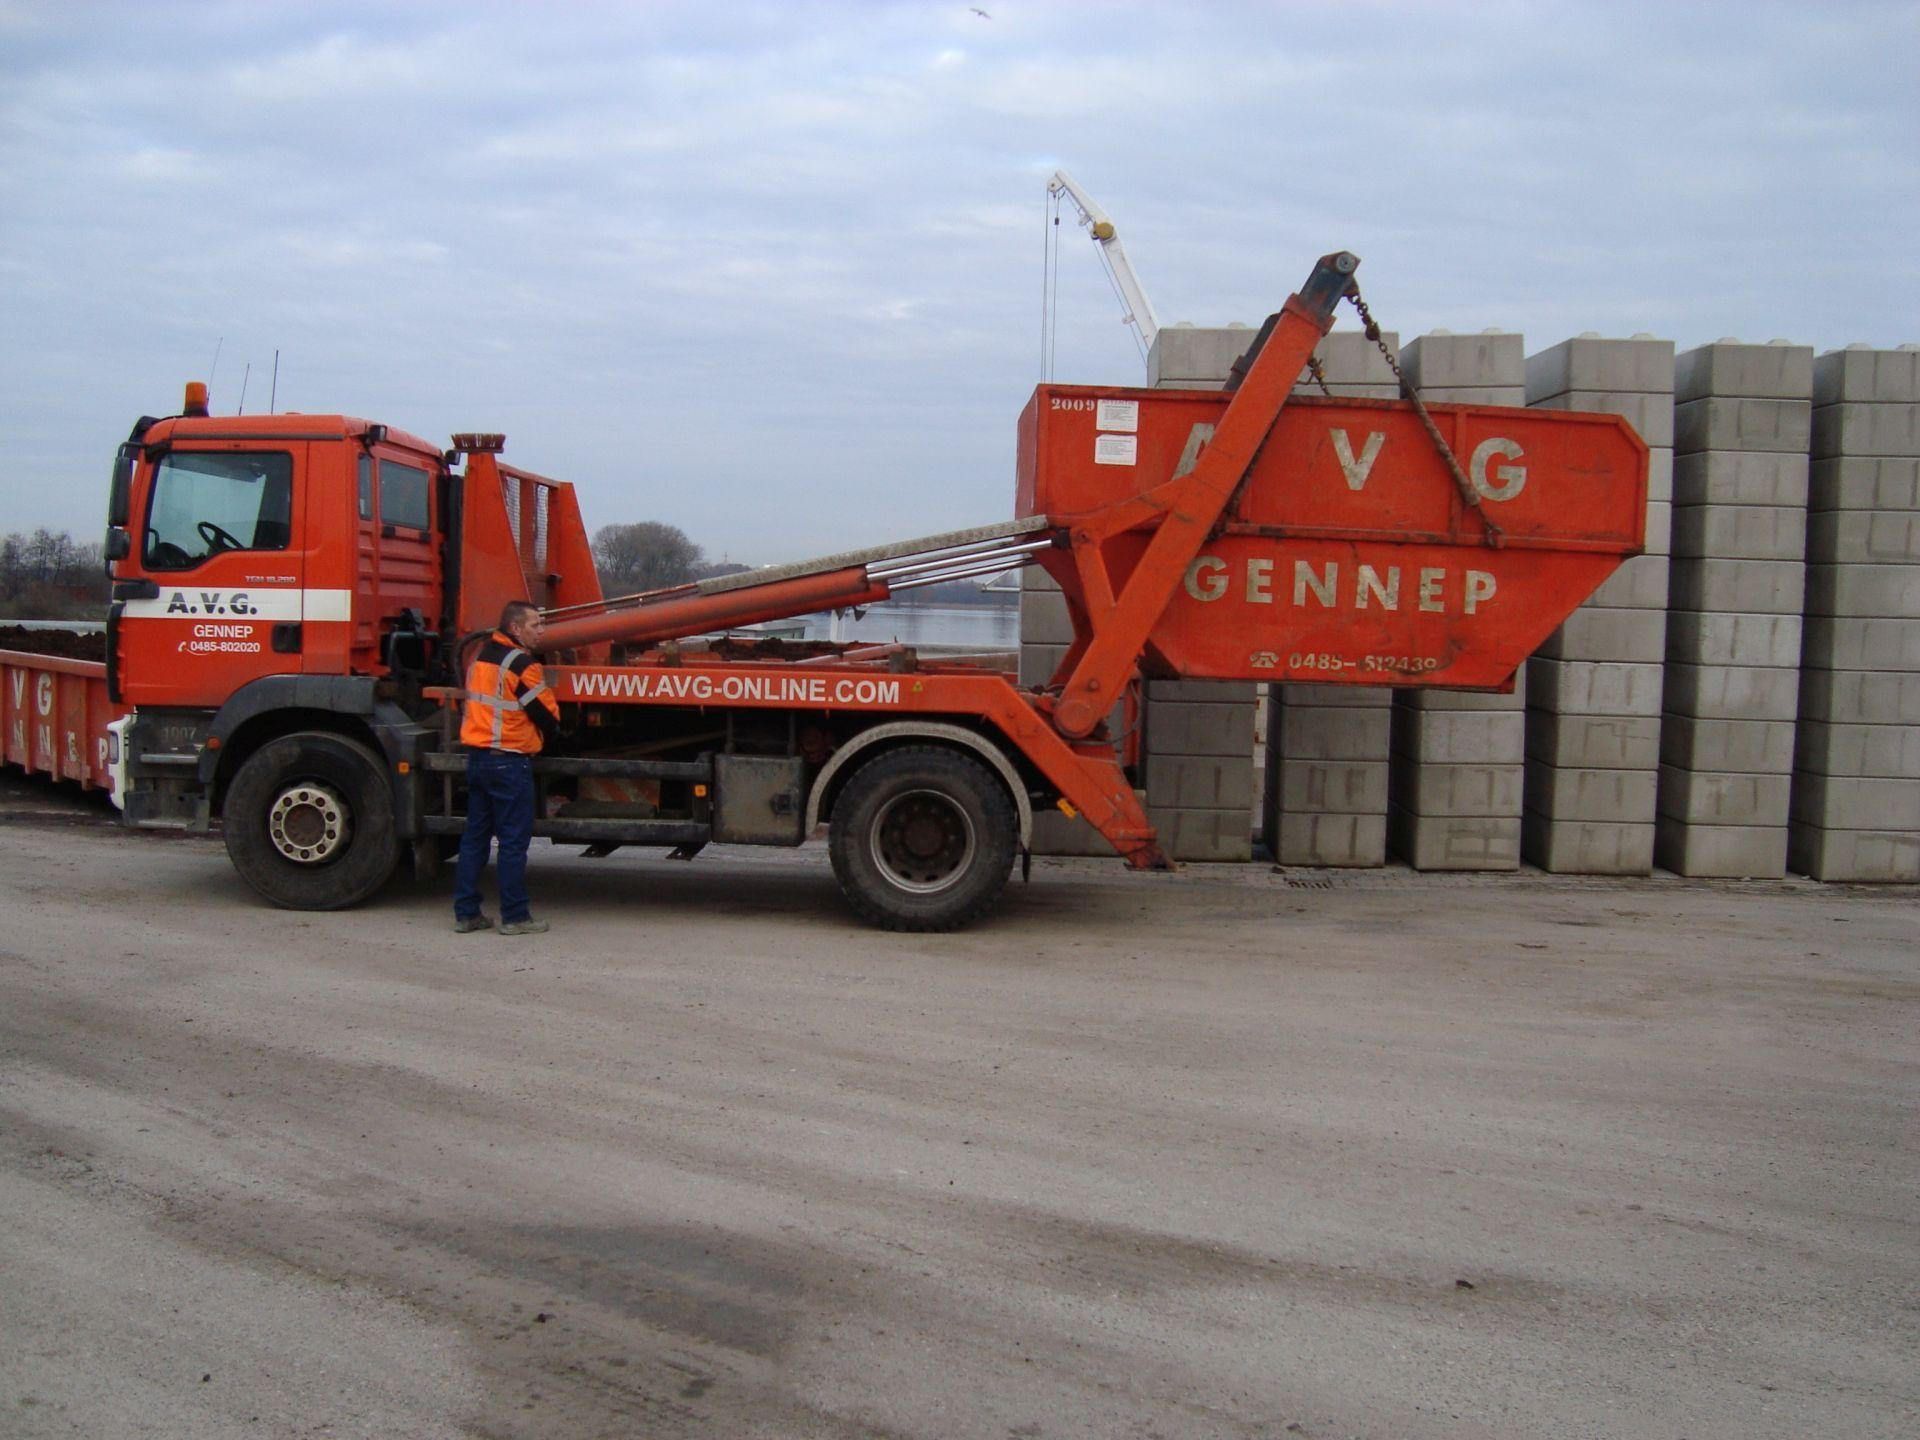 hoge-container-16-avg-bouwstoffen